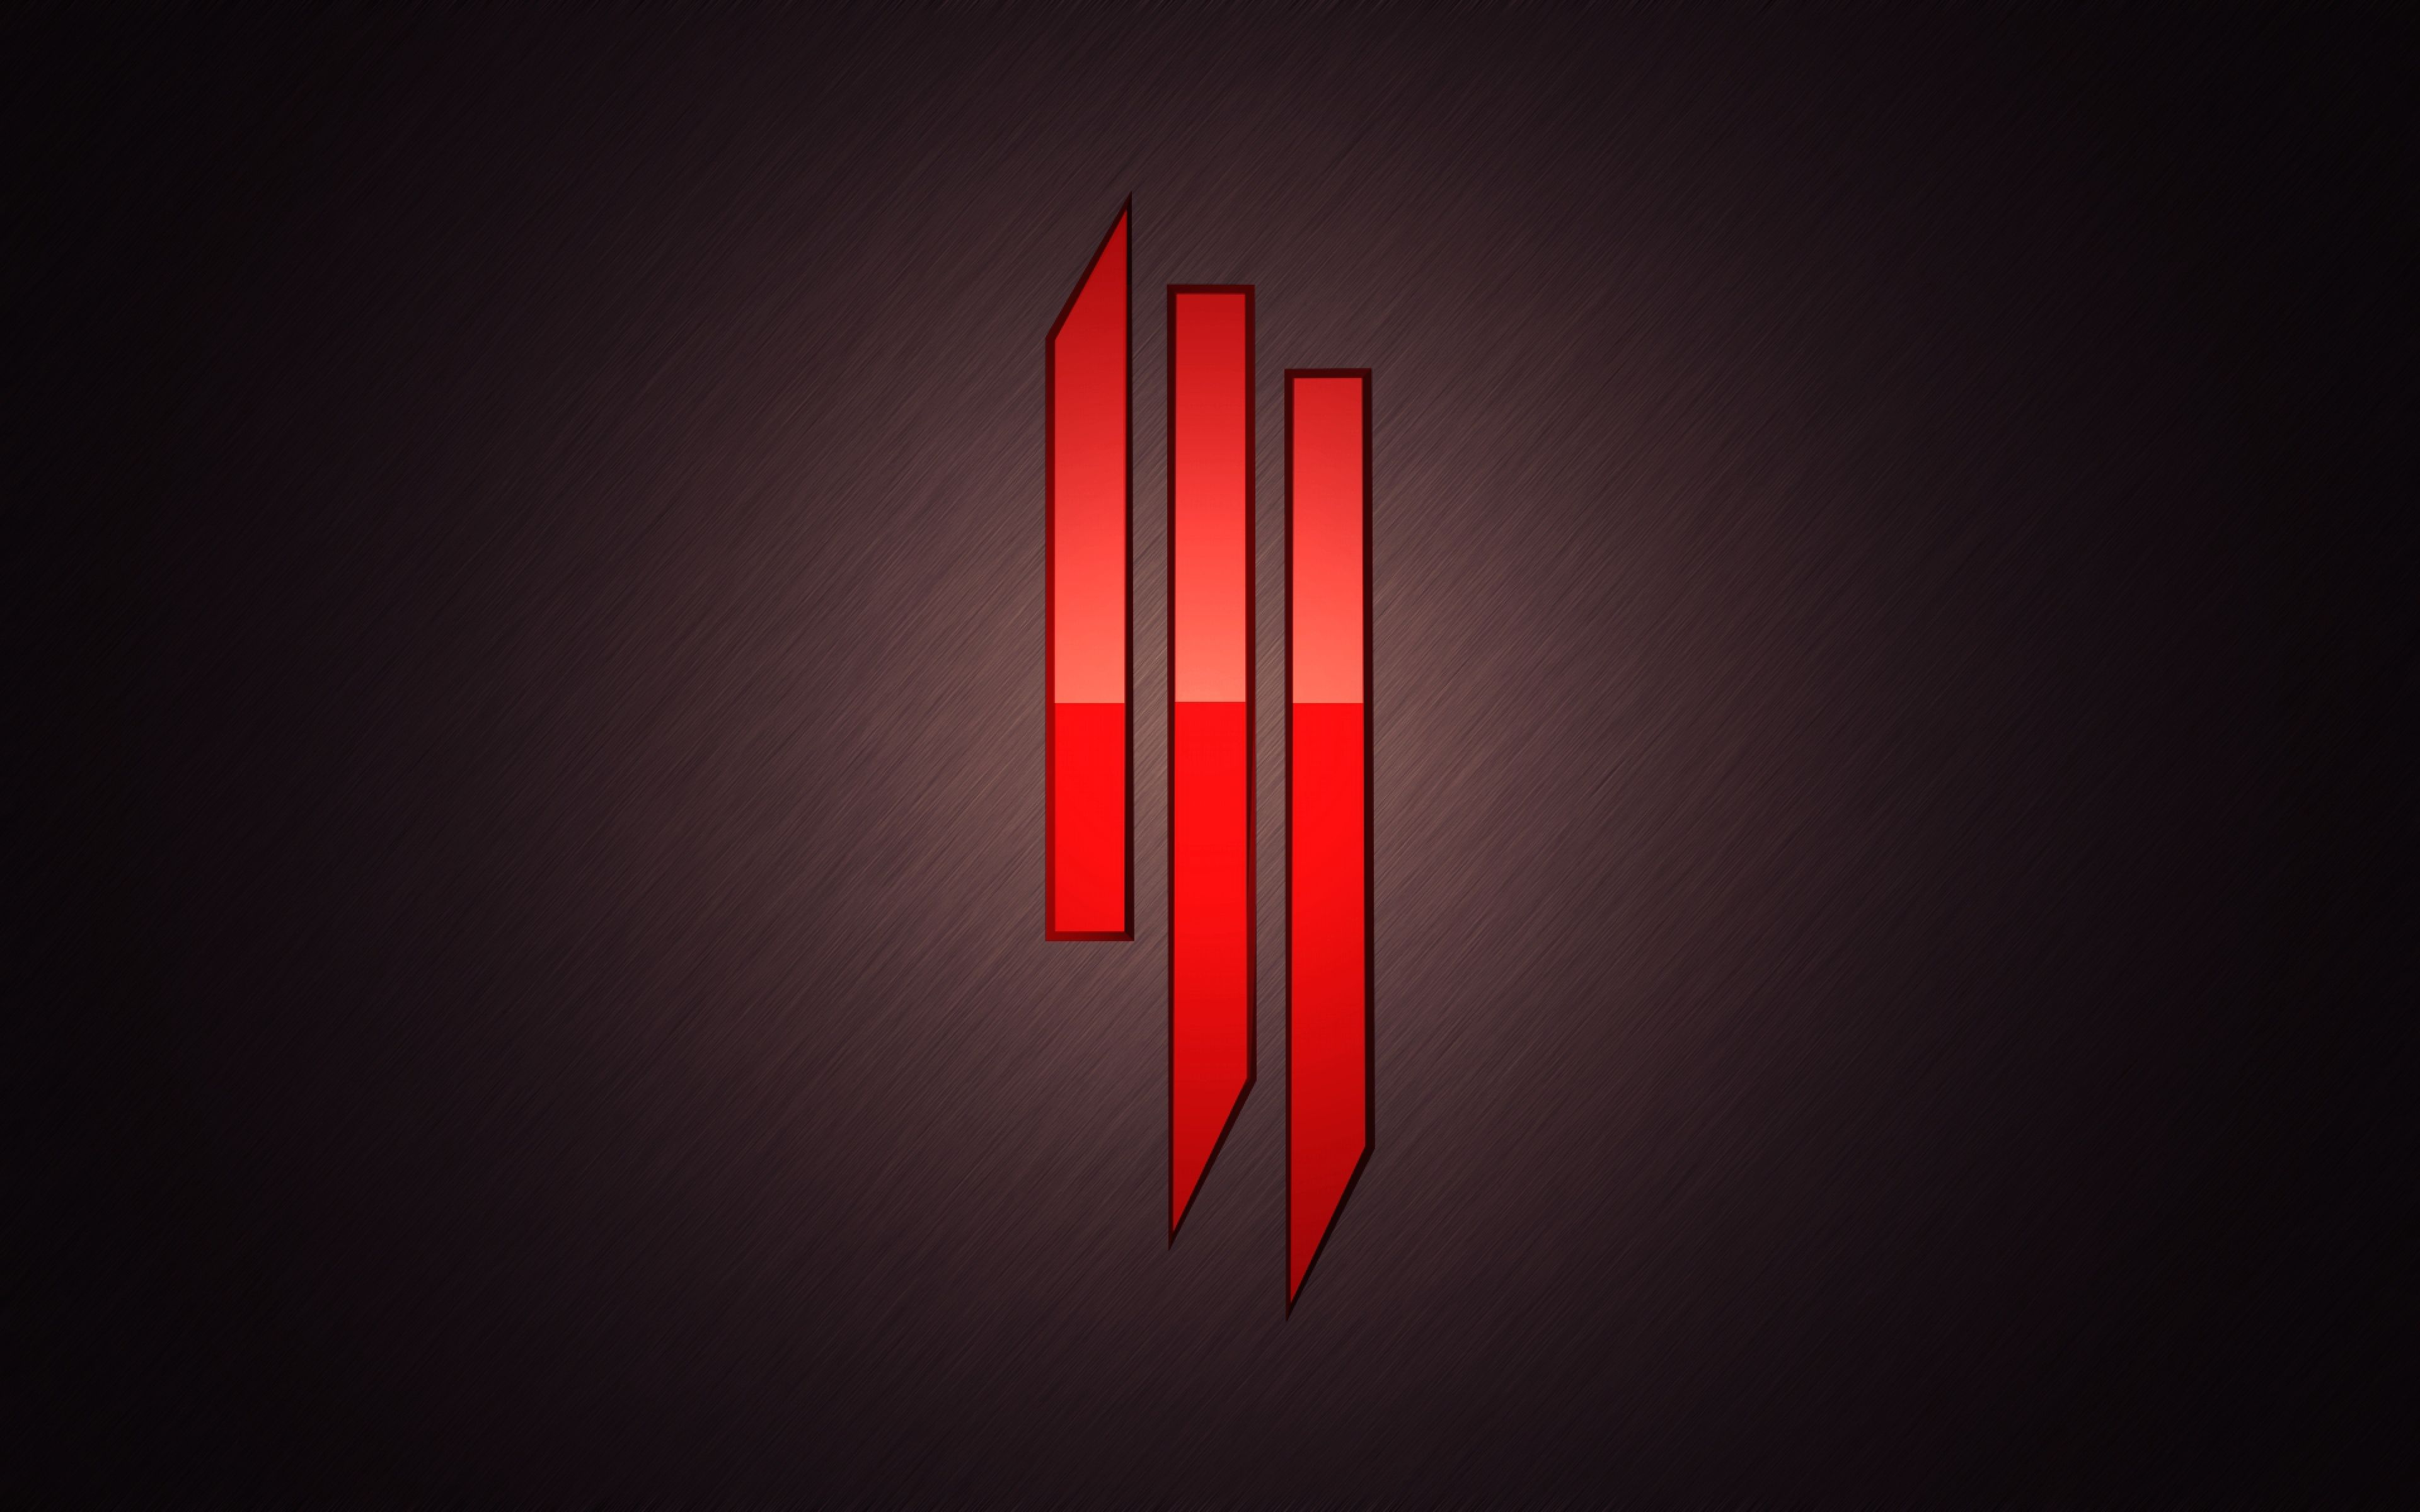 Music Symbol Images Hd Wallpaper